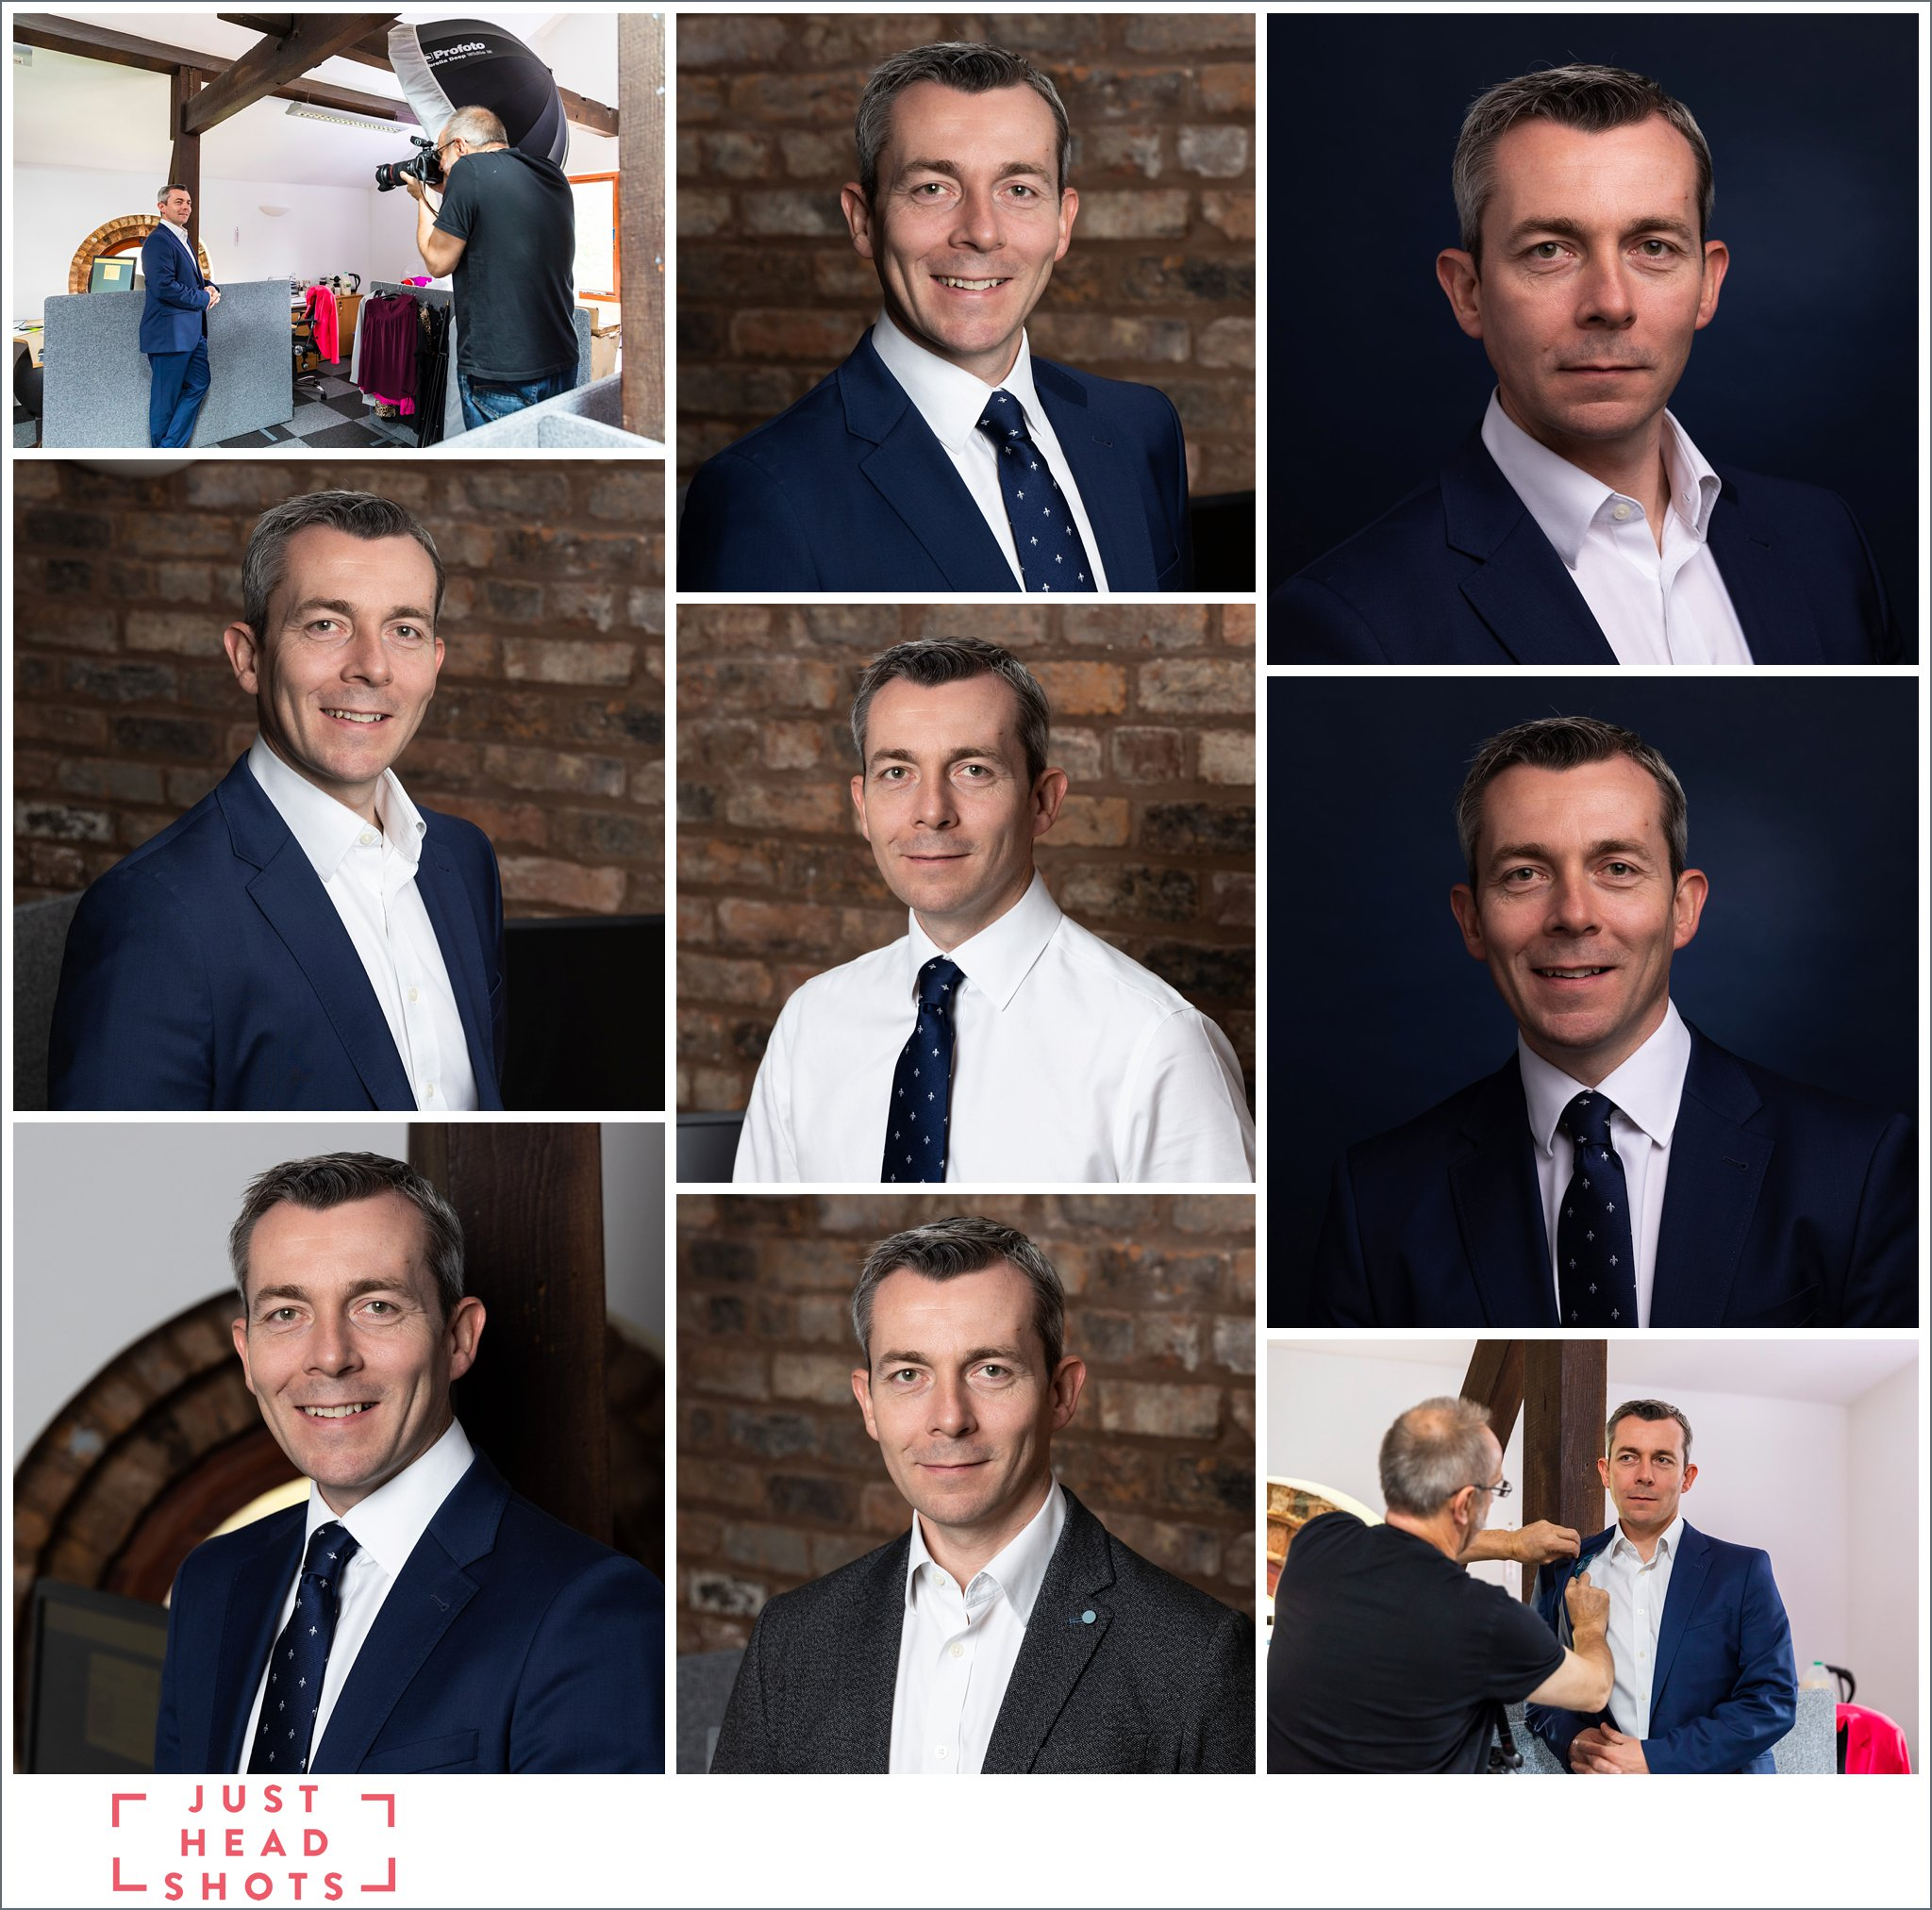 Professional headshots photos taken in Warrington of grey haired man in suit against dark blue backgrounds and against natural backgrounds with behind the scenes photos